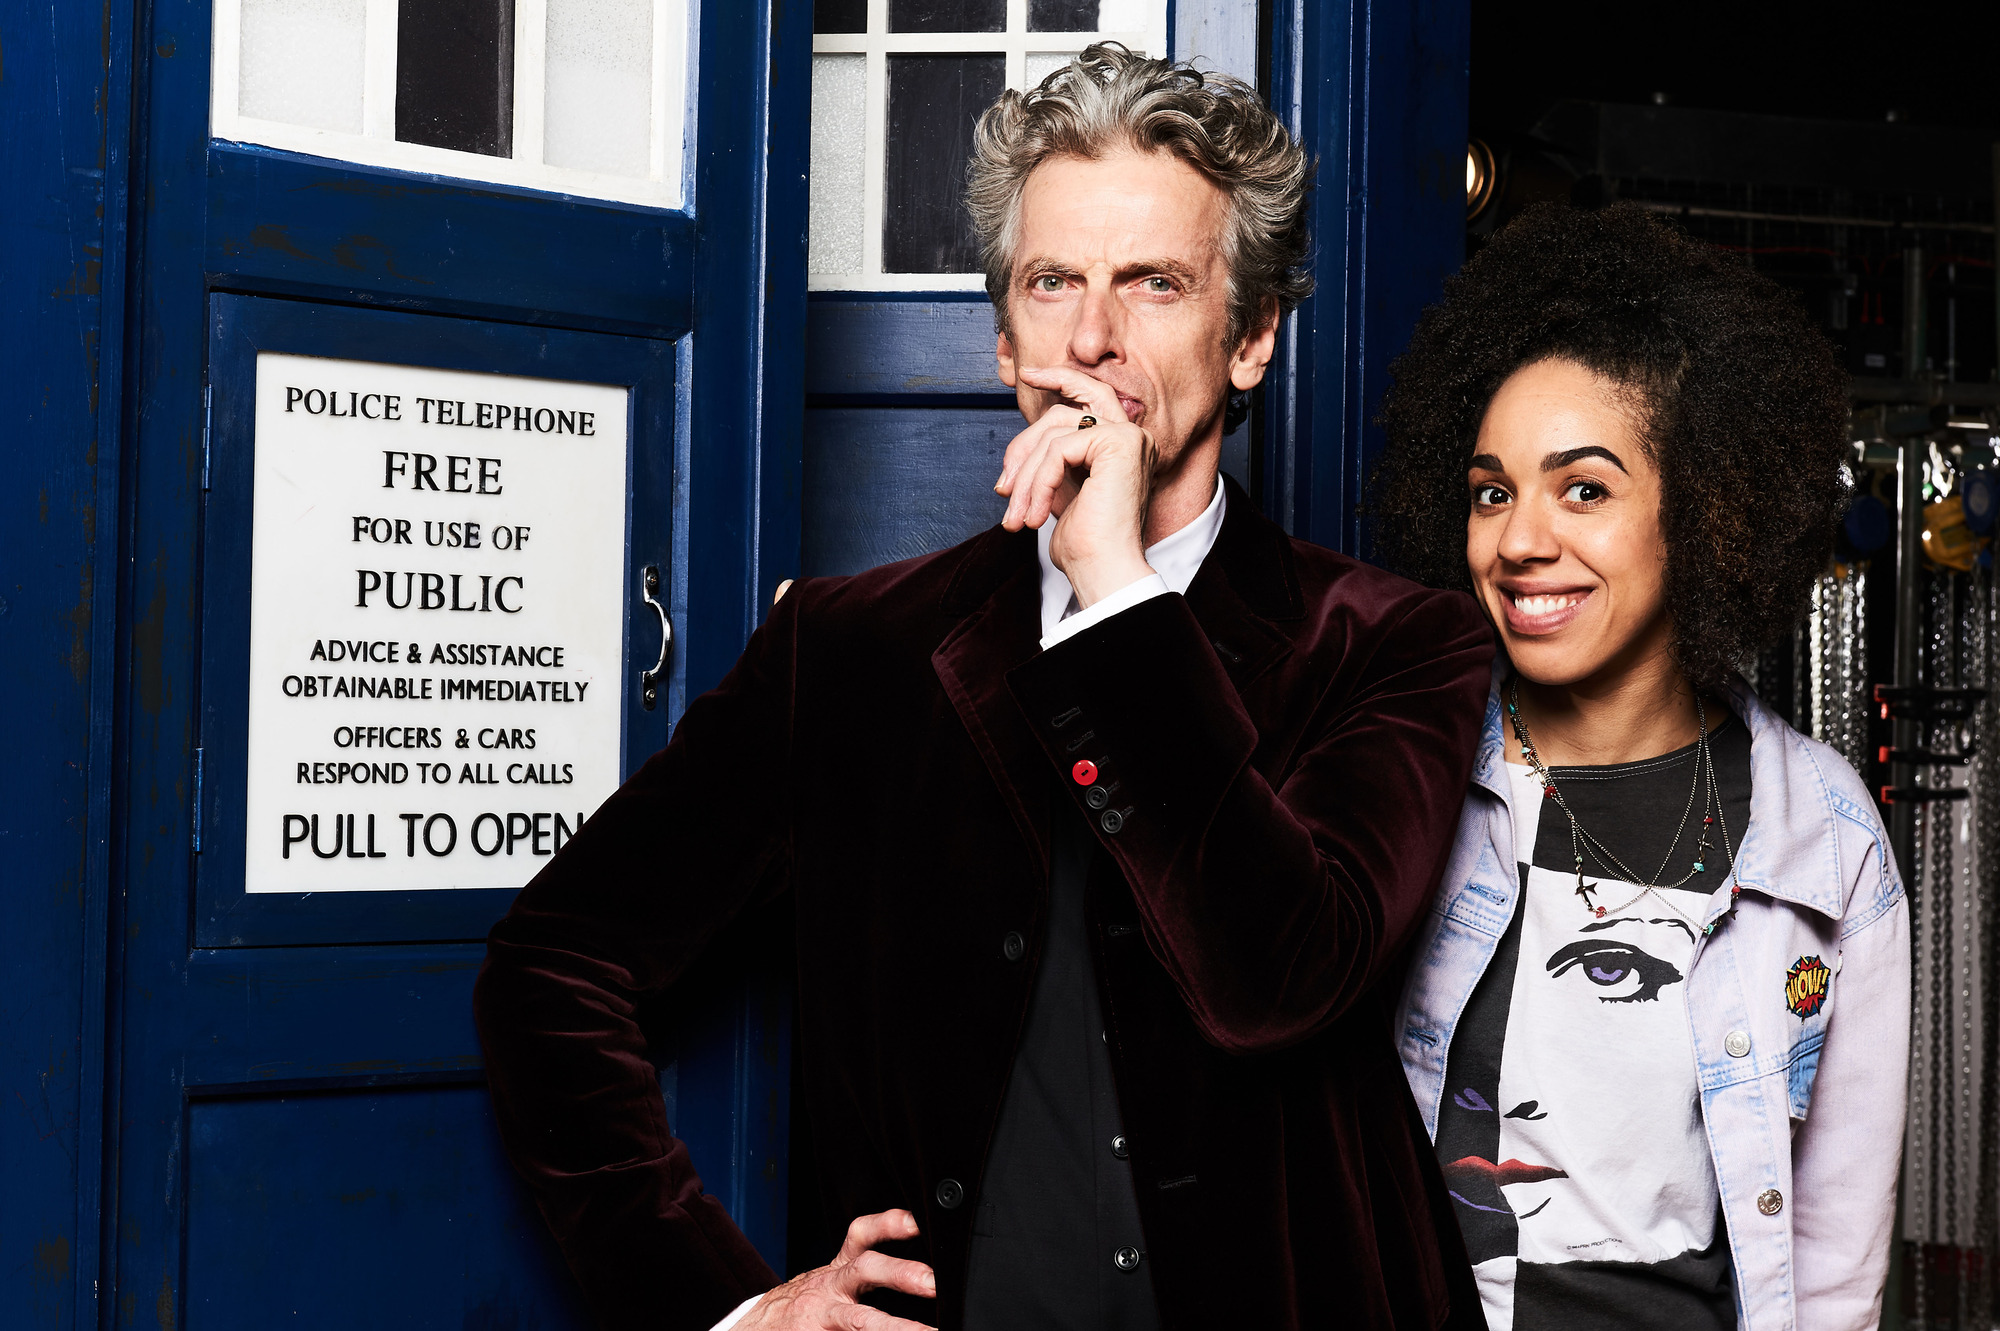 When does Doctor Who season 10 start?